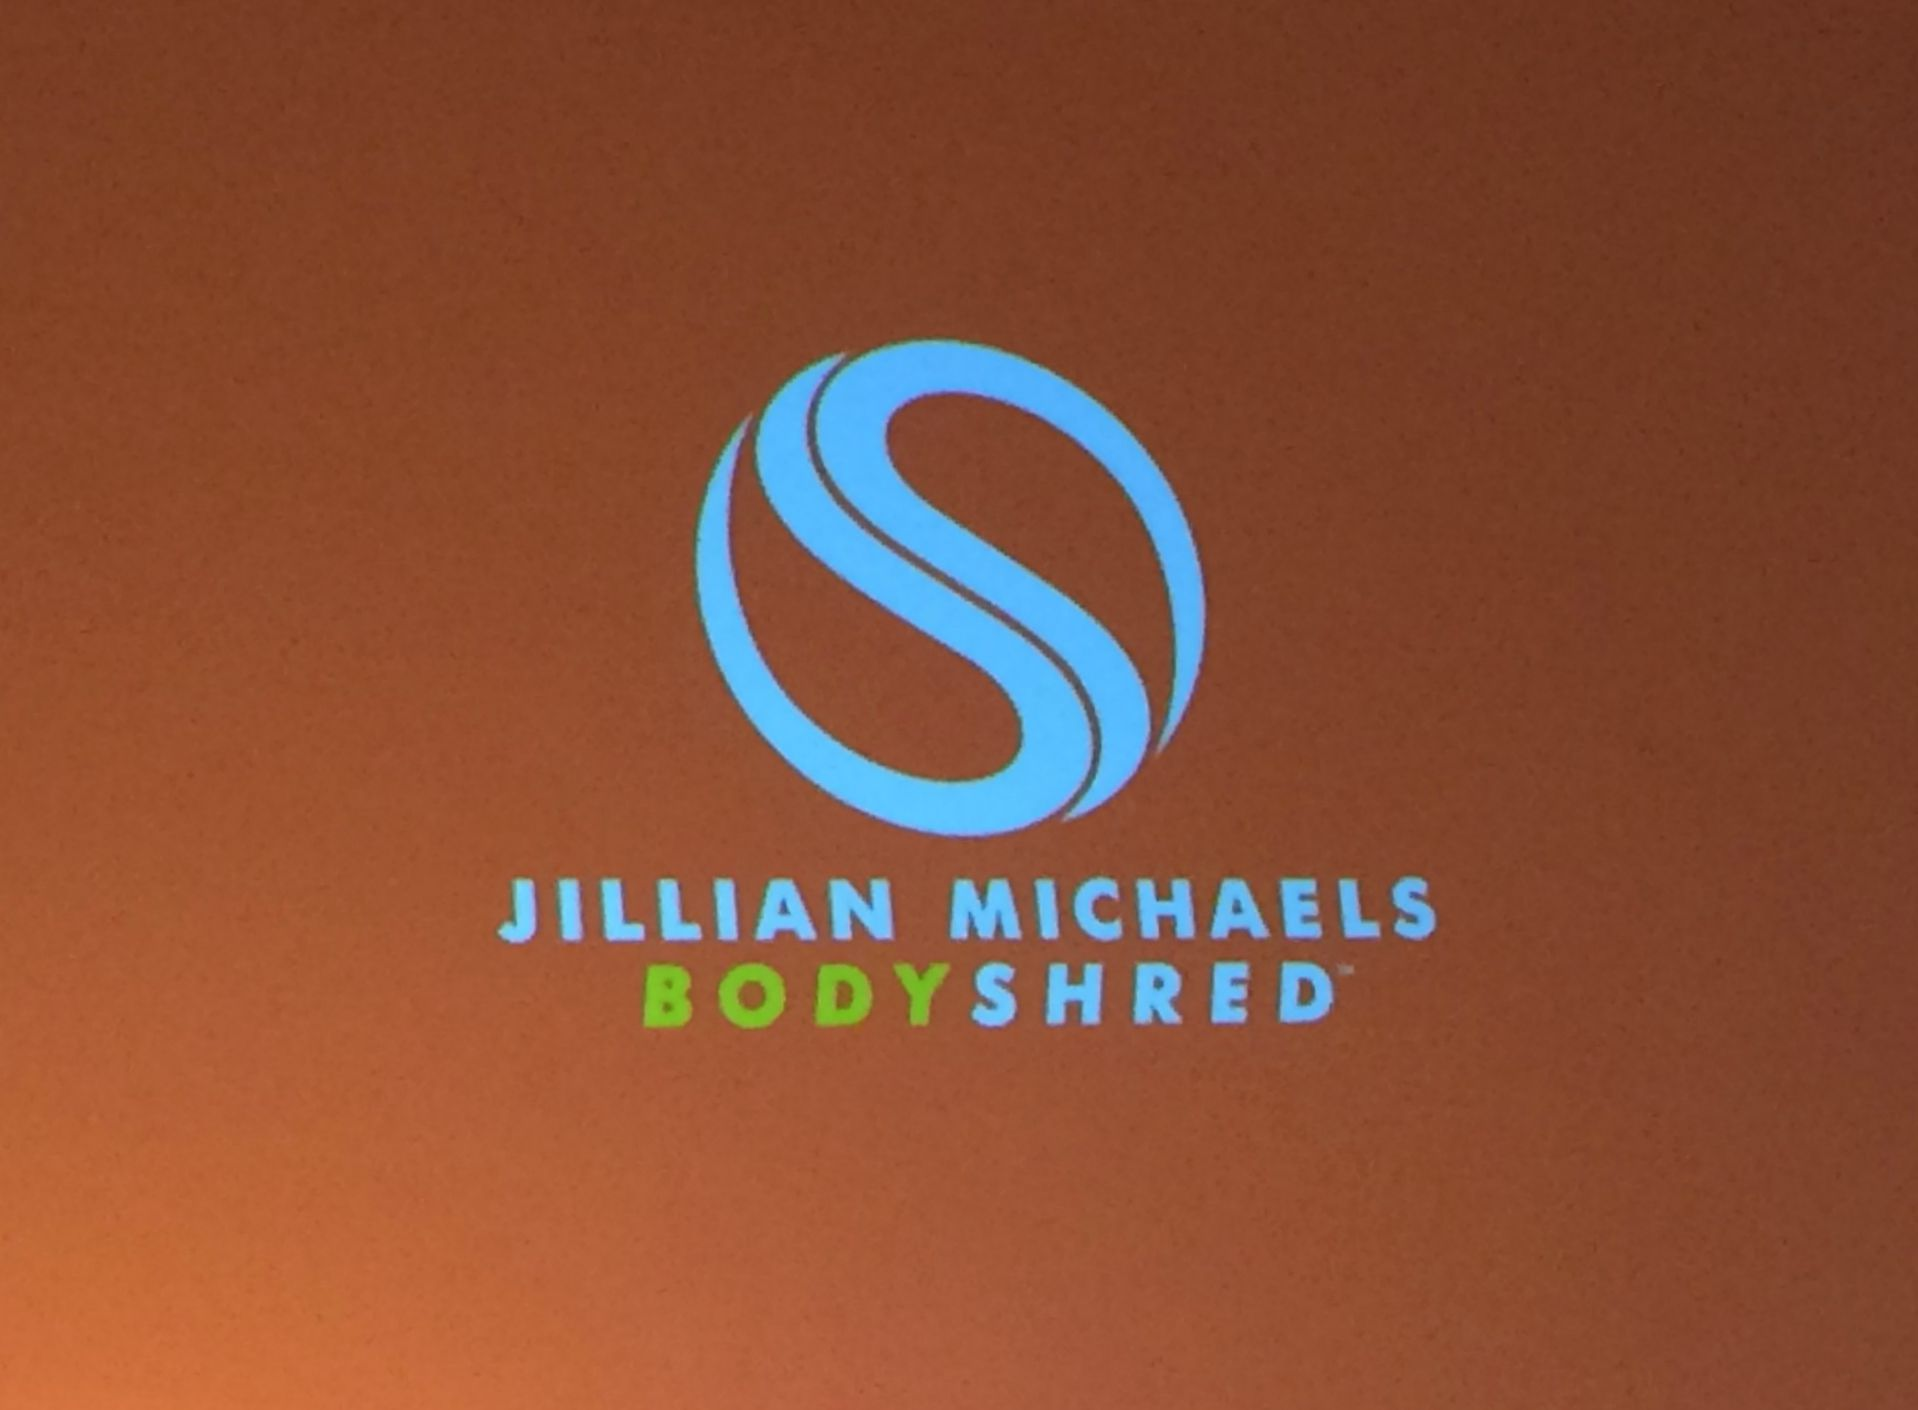 Jillian Michaels Body Shred at IDEA